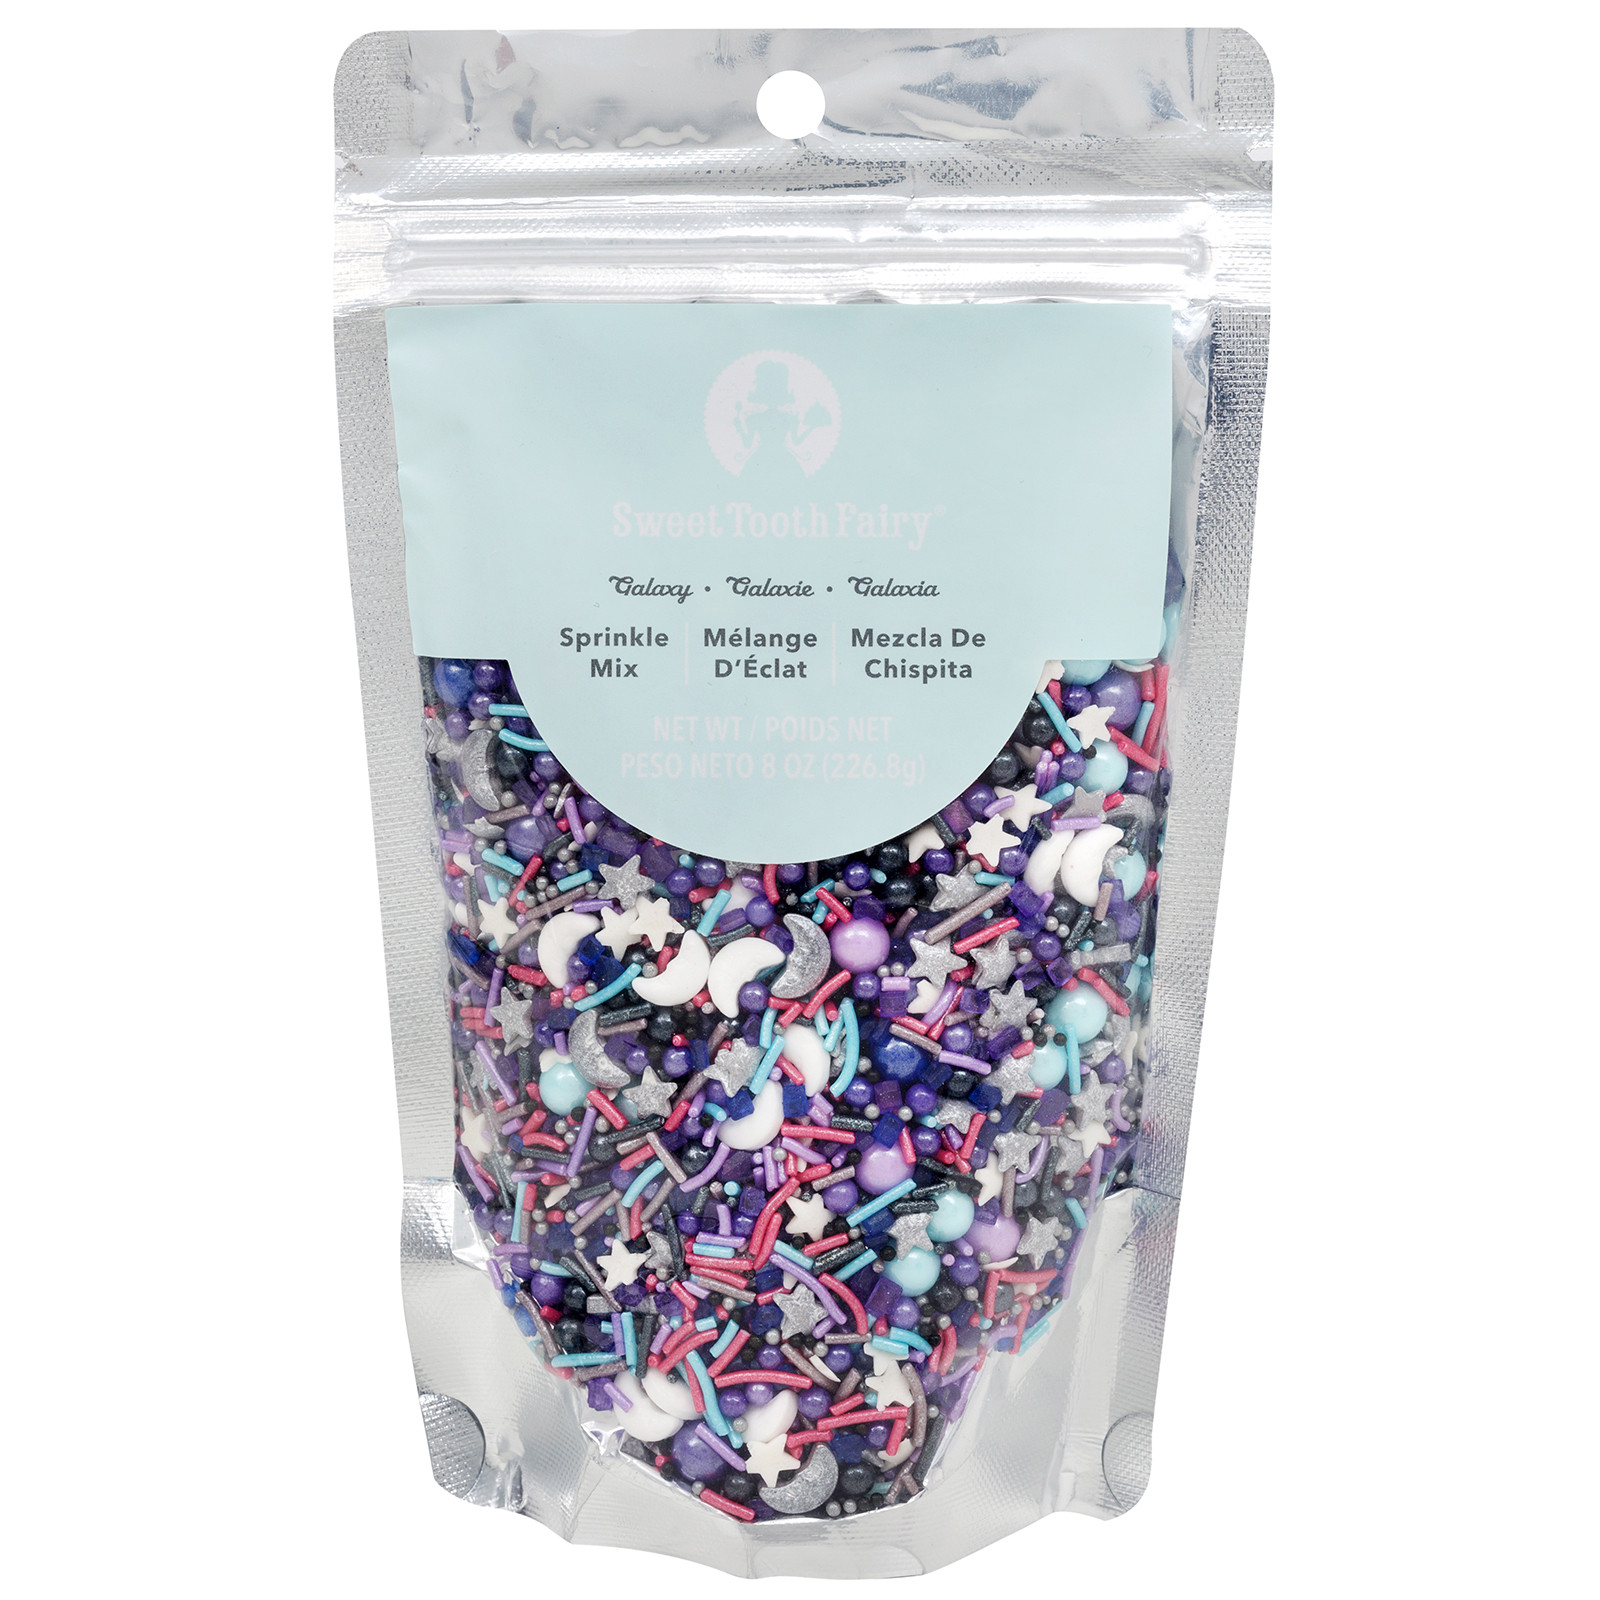 SweetTooth Fairy Golden Sprinkle Mix 8 oz226.8g